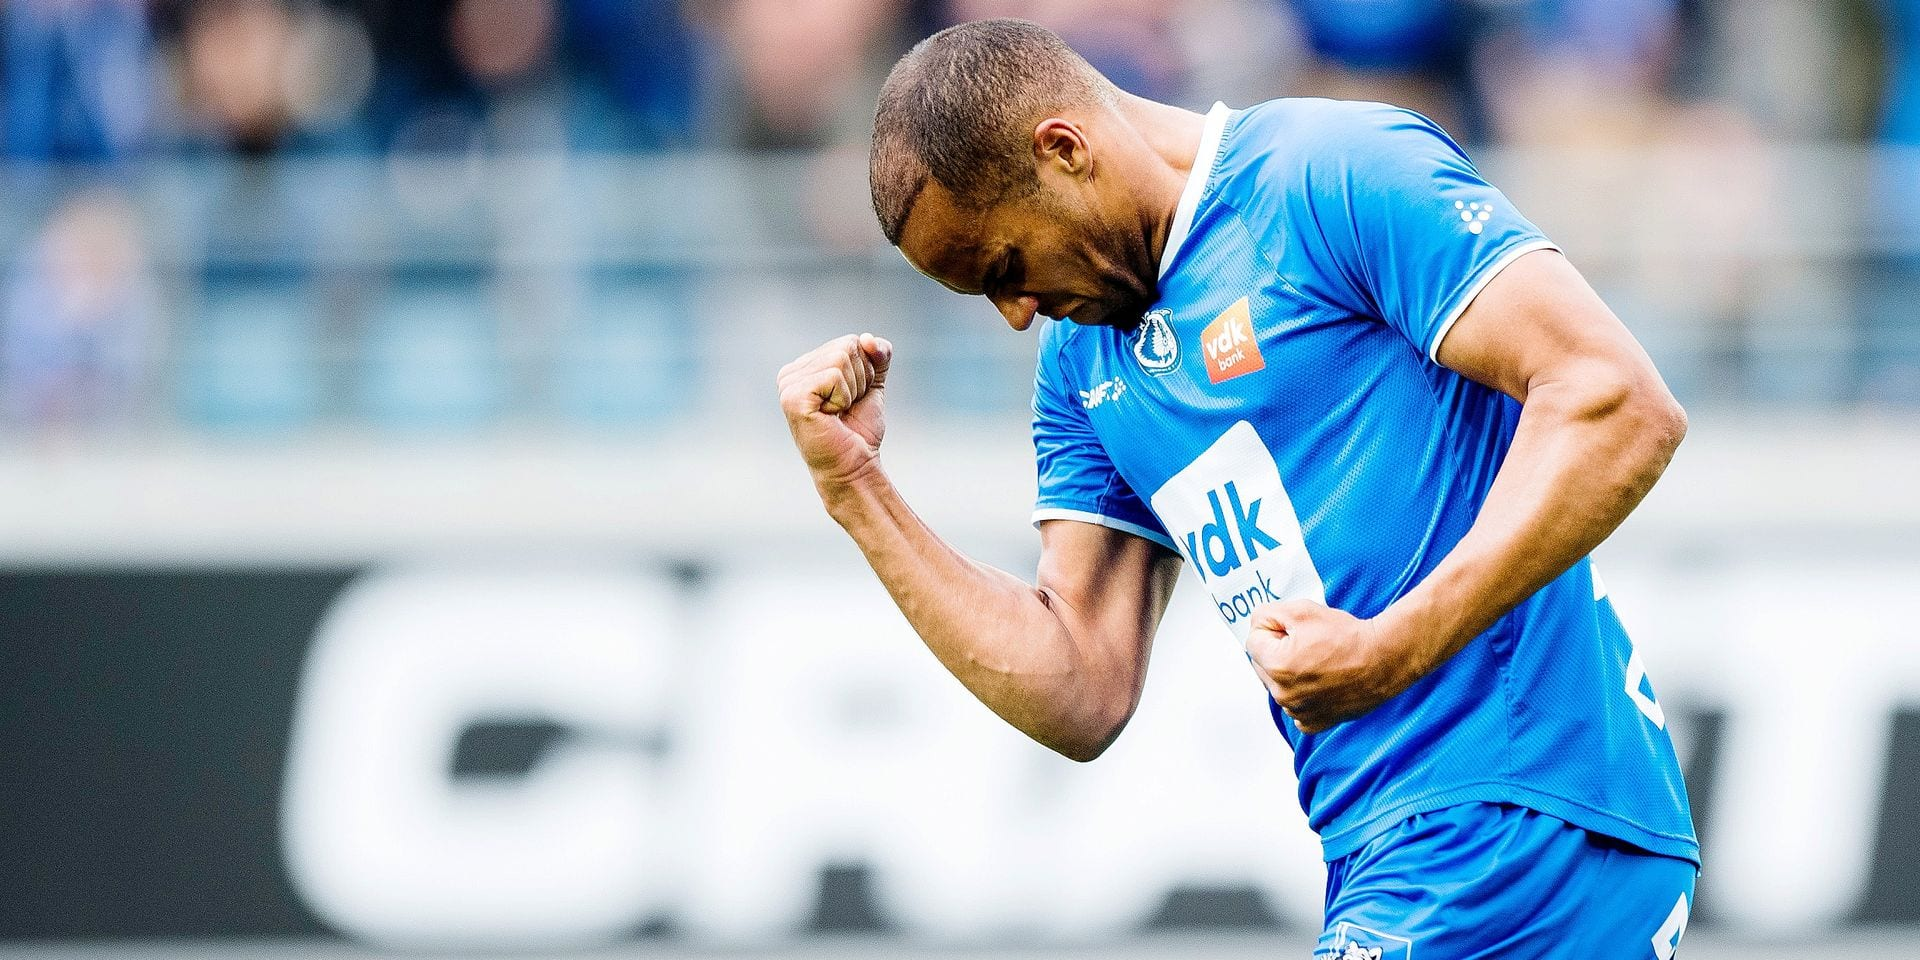 Gent's Vadis Odjidja-Ofoe celebrate after scoring a disallowed goal during the Jupiler Pro League match of Play-Off group 1, between KAA Gent and Club Brugge KV, in Gent, Sunday 05 May 2019, on day 7 of the Play-Off 1 of the Belgian soccer championship. BELGA PHOTO JASPER JACOBS